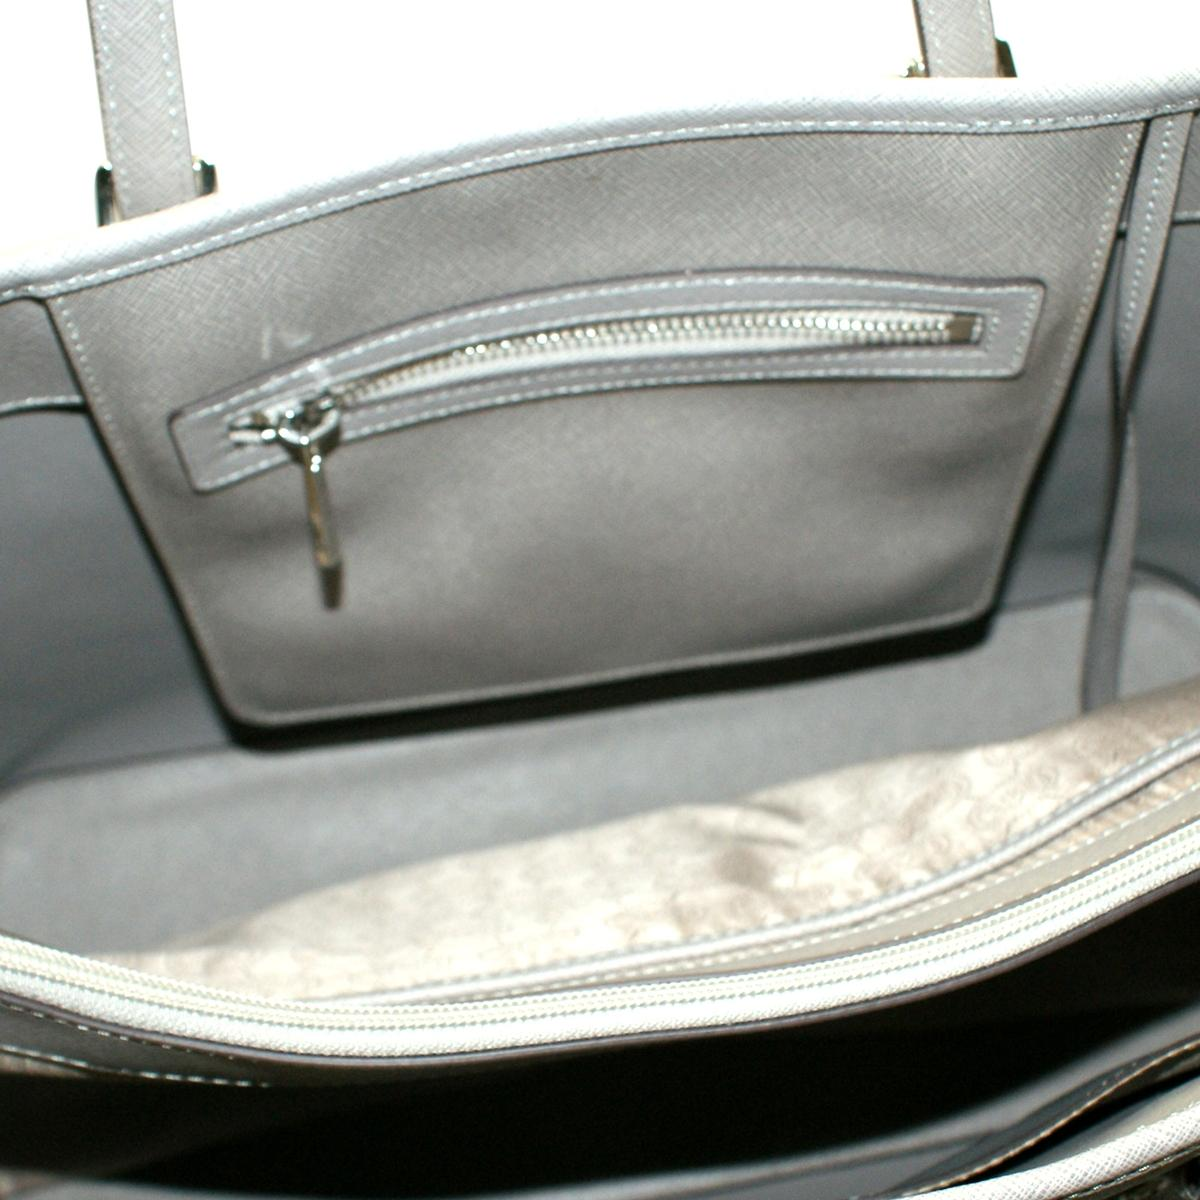 1adfd31a9f02 Home · Michael Kors · Jet Set Medium Travel Genuine Saffiano Leather Tote  Pearl Grey. CLICK THUMBNAIL TO ZOOM. Found ...